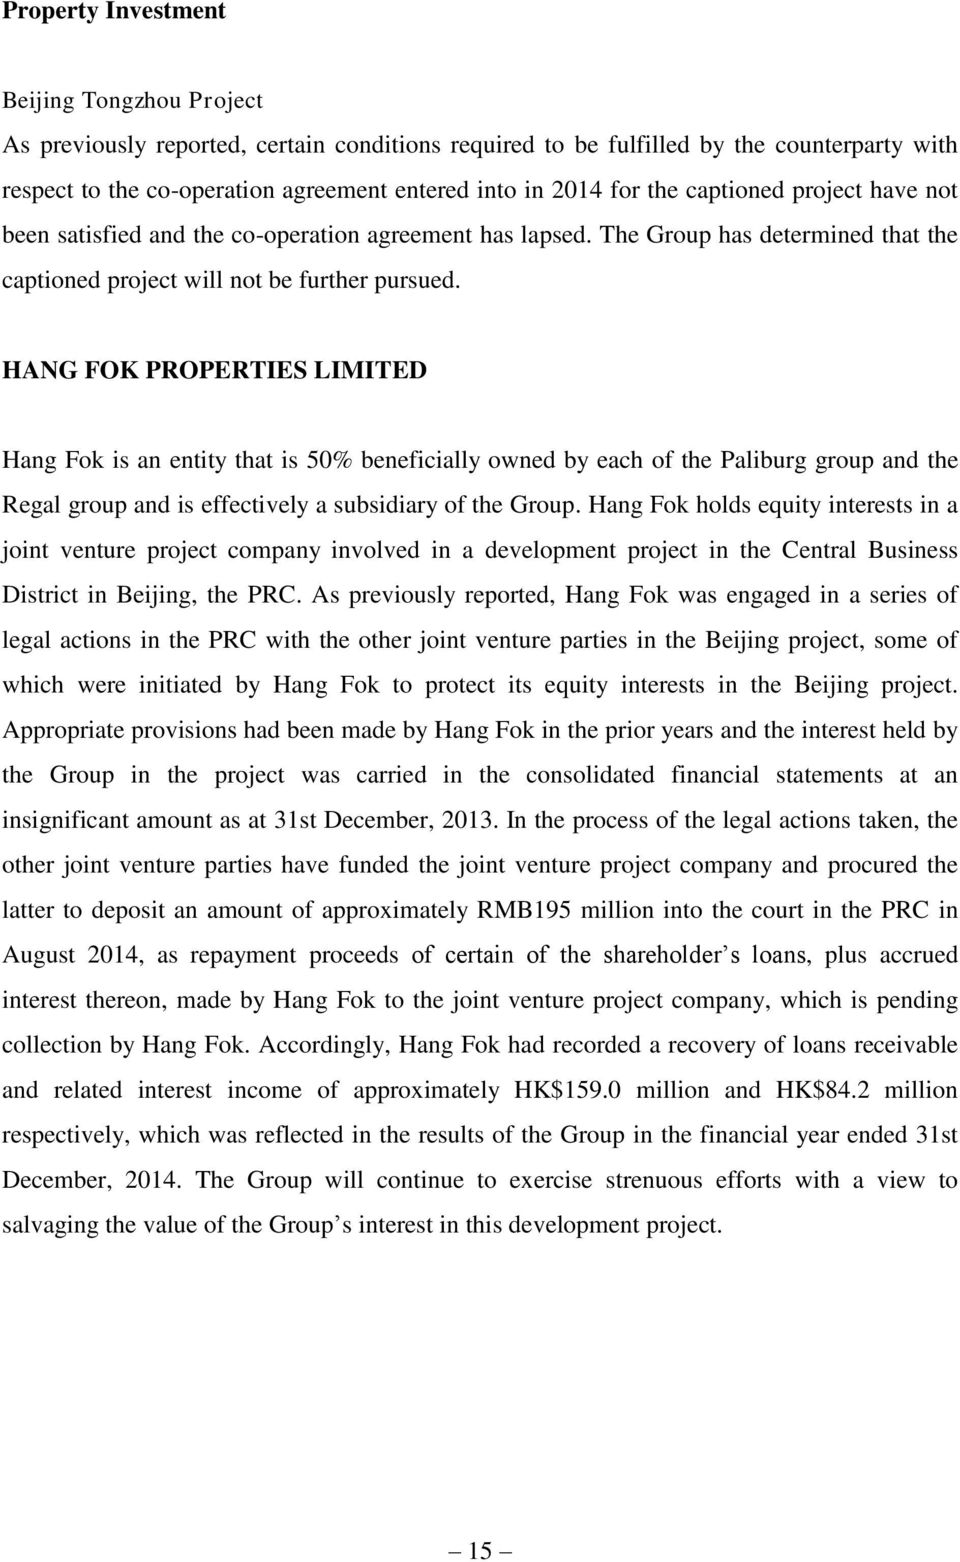 HANG FOK PROPERTIES LIMITED Hang Fok is an entity that is 50% beneficially owned by each of the Paliburg group and the Regal group and is effectively a subsidiary of the Group.